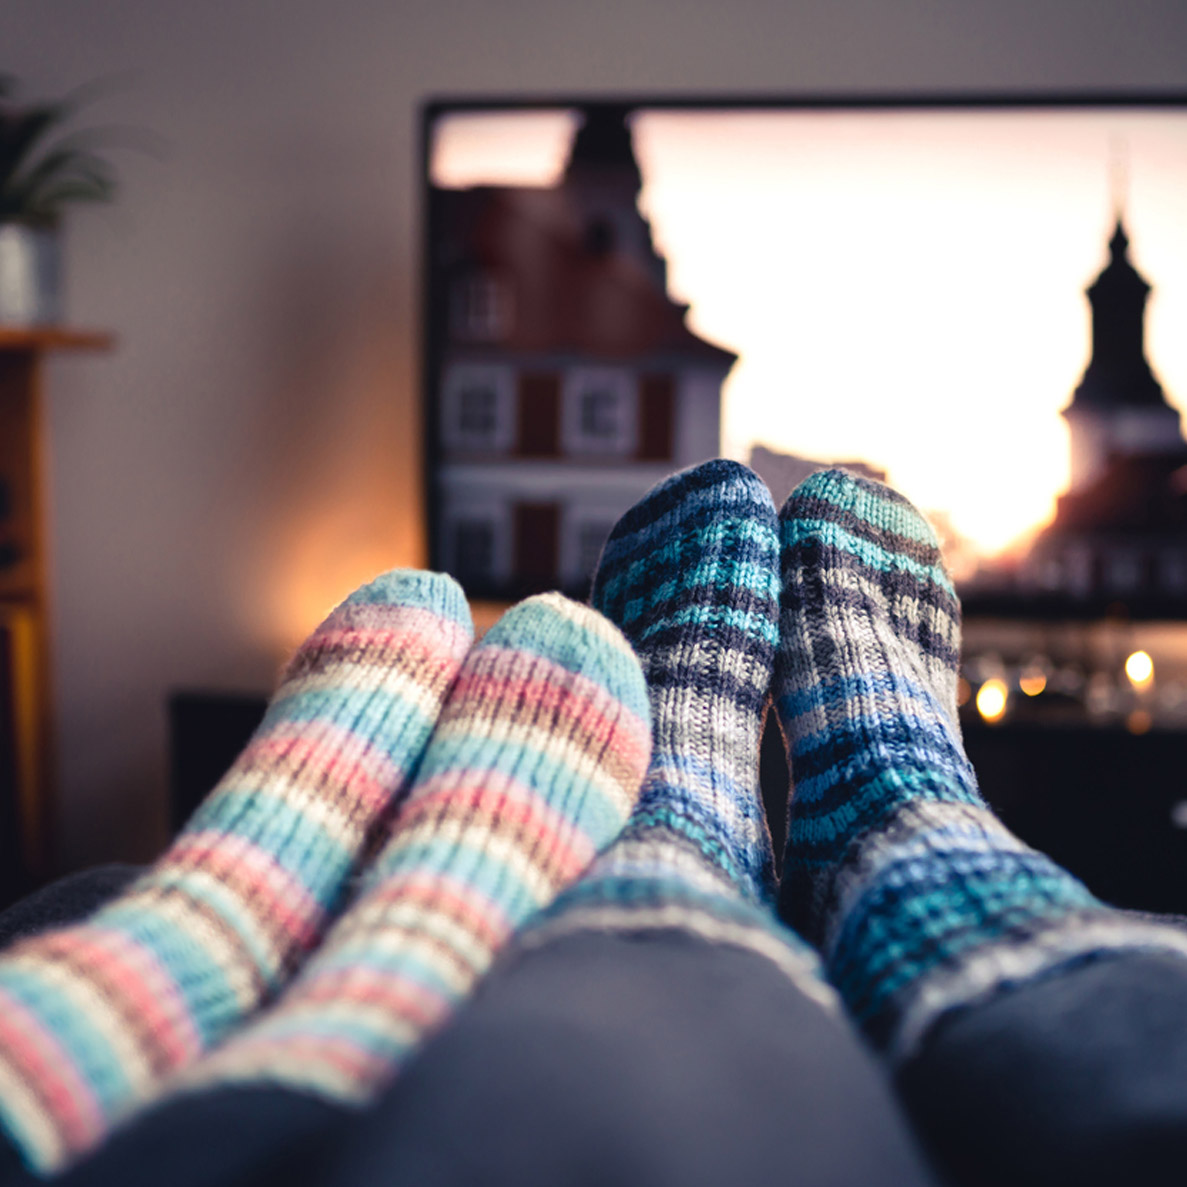 socks-in-front-of-tv